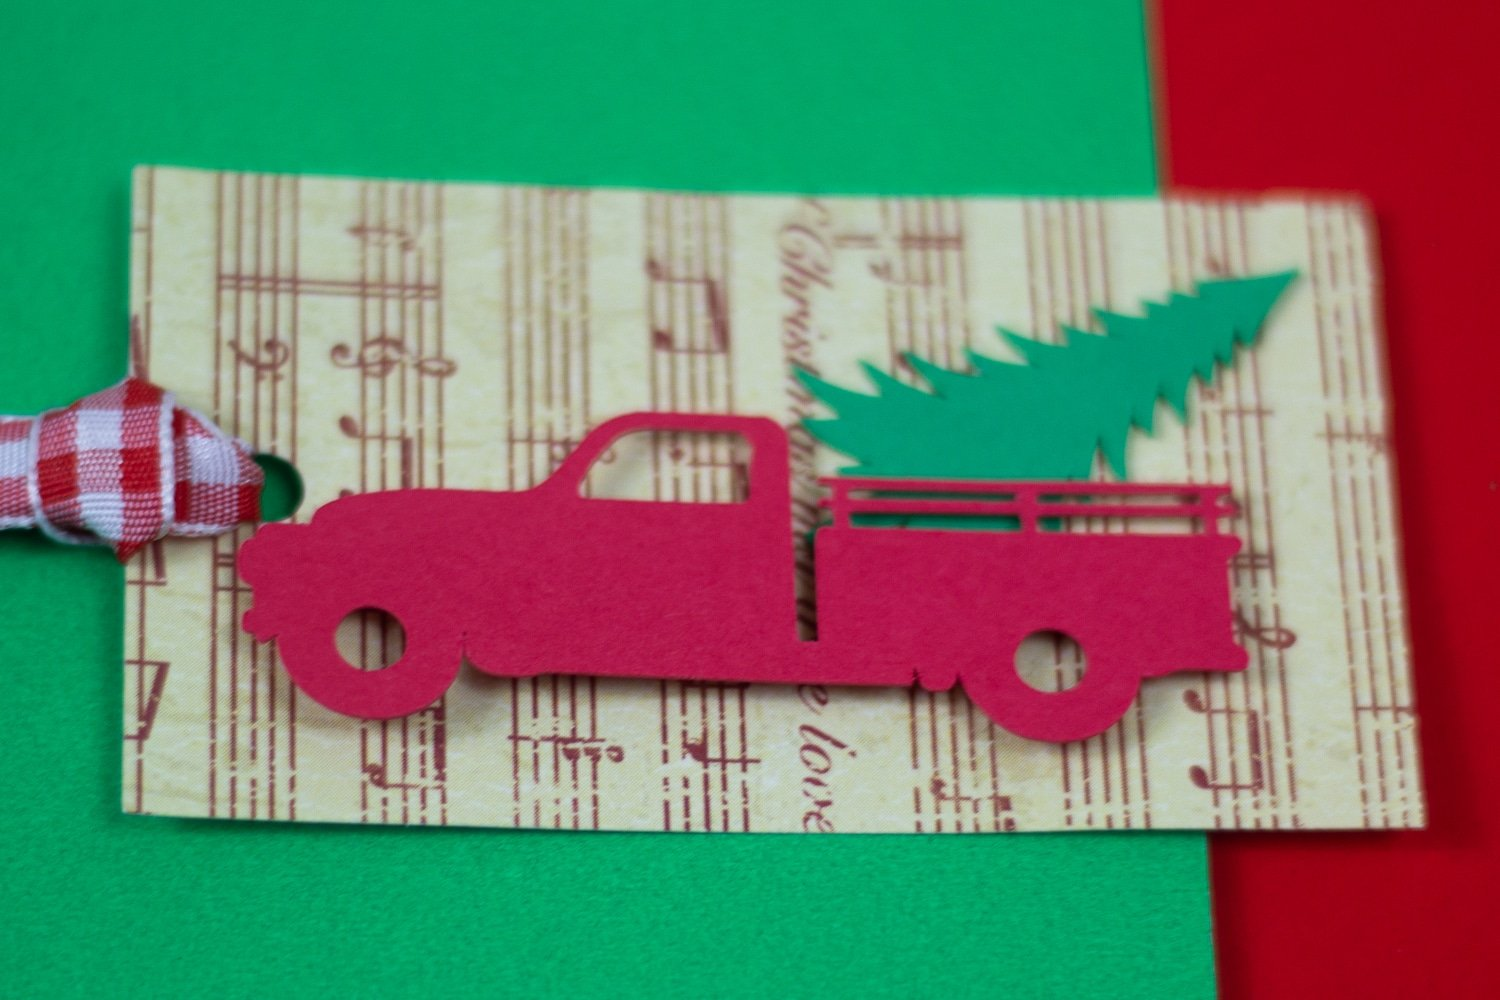 Let's talk about how cool my presents are going to be under the tree this year with these easy Red Truck Christmas Tags. And the kids loved helping make them!